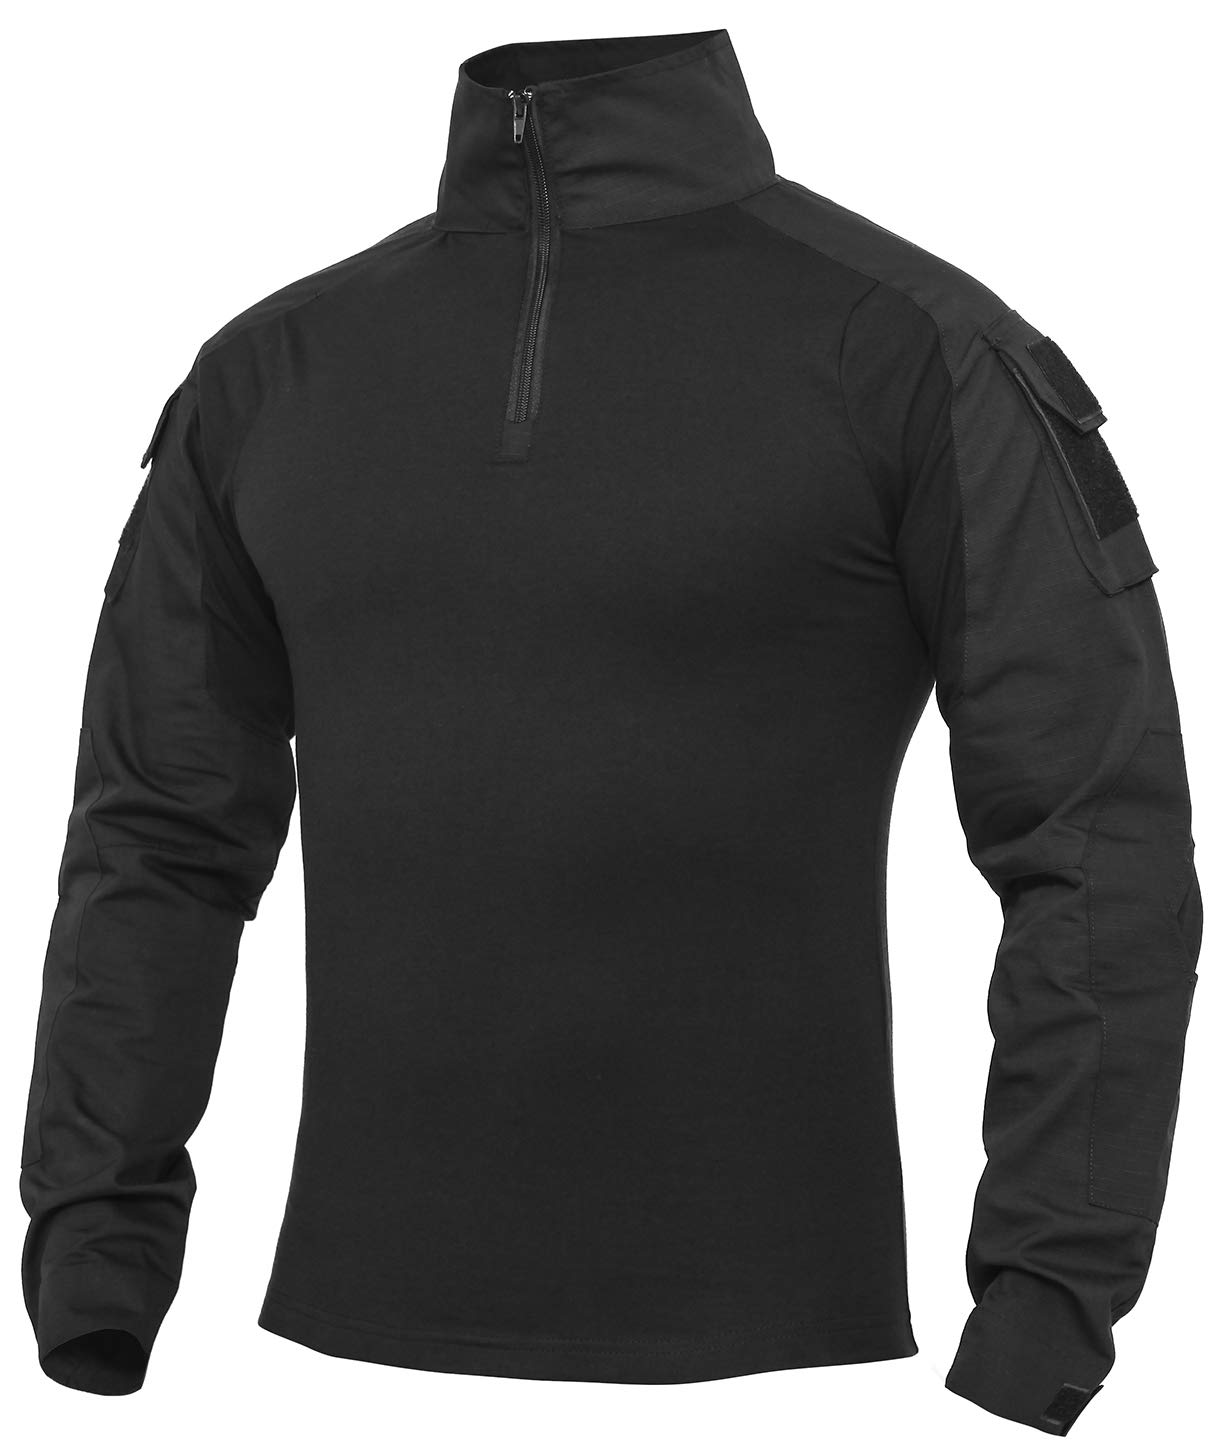 XKTTAC Tactical-Combat -Airsoft-Military-Shirt (Black, S)